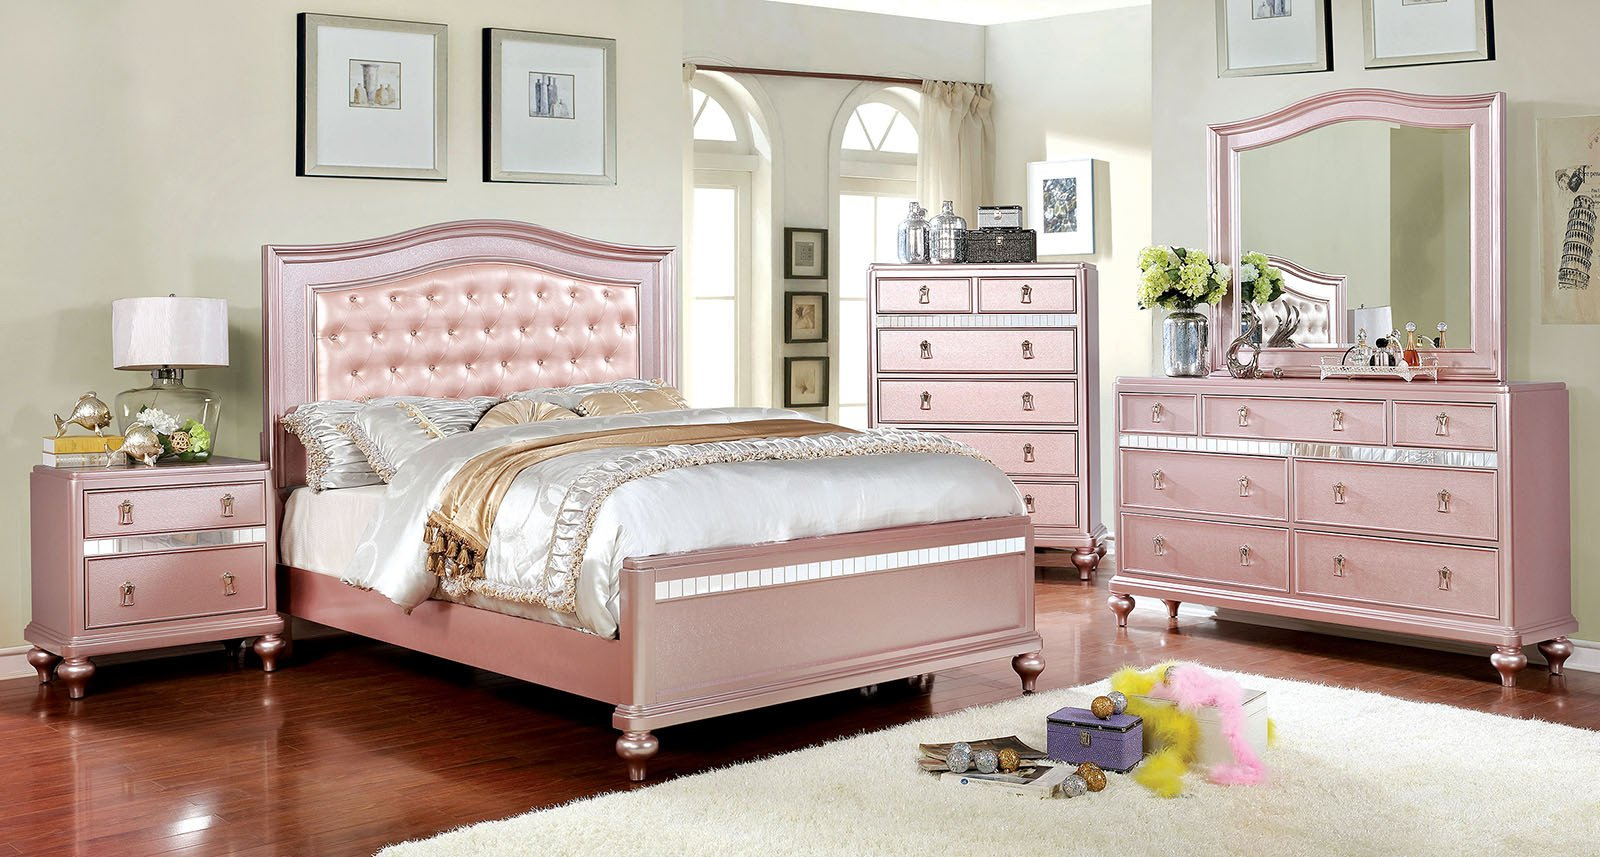 Tufted King Bedroom Set Luxury Ariston Rose Gold Finish Cal King Size Bed with Mirrored Trim Jeweled button Tufted Padded Leather Headboard